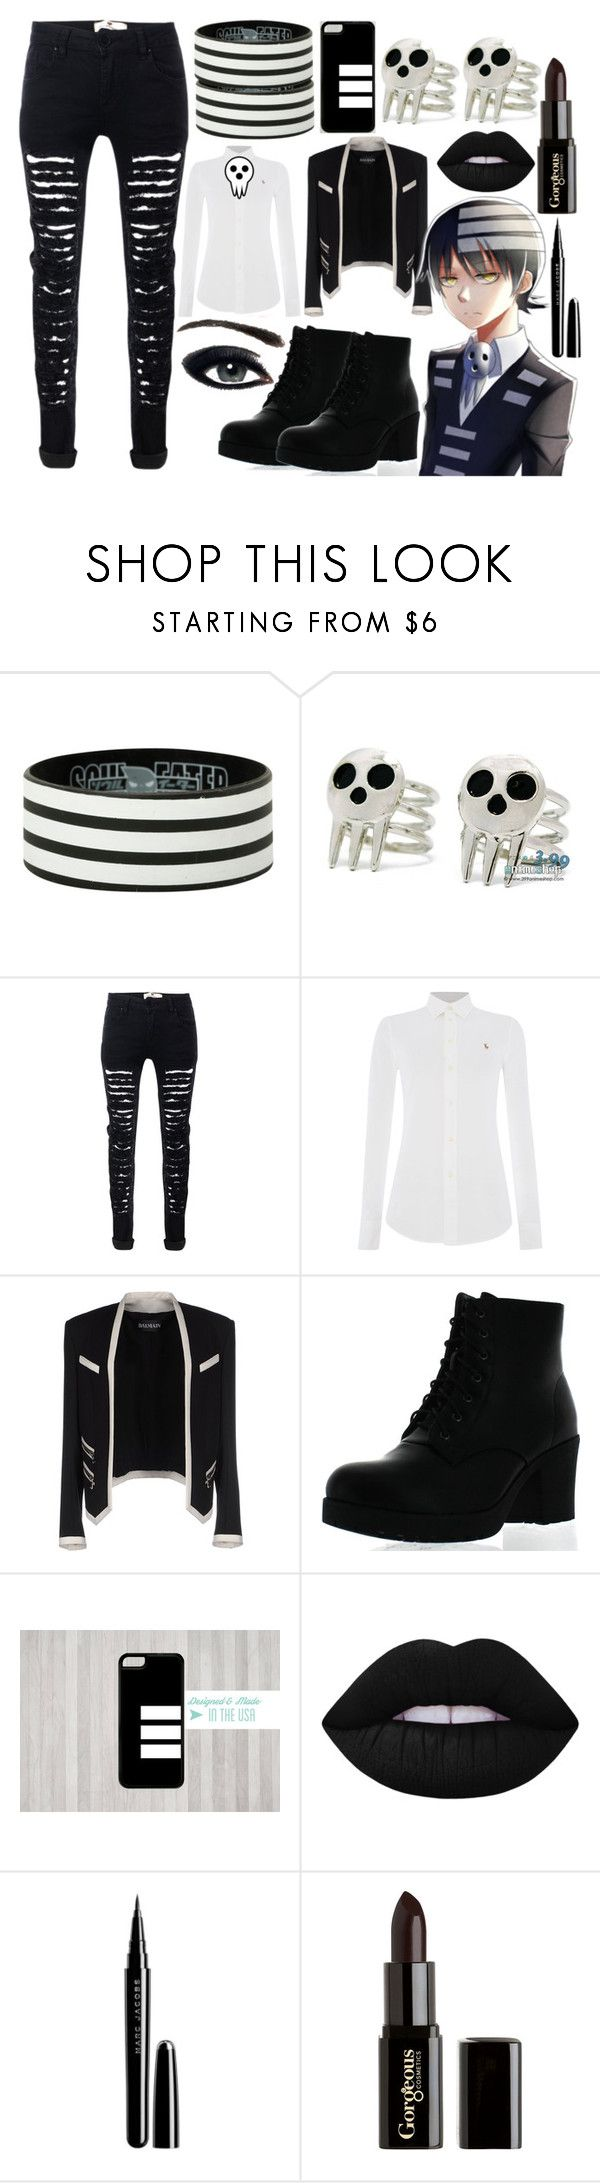 """""""Soul Eater // Death the Kid"""" by stormtrooper2003 ❤ liked on Polyvore featuring Polo Ralph Lauren, Balmain, Refresh, Lime Crime, Marc Jacobs and Gorgeous Cosmetics"""